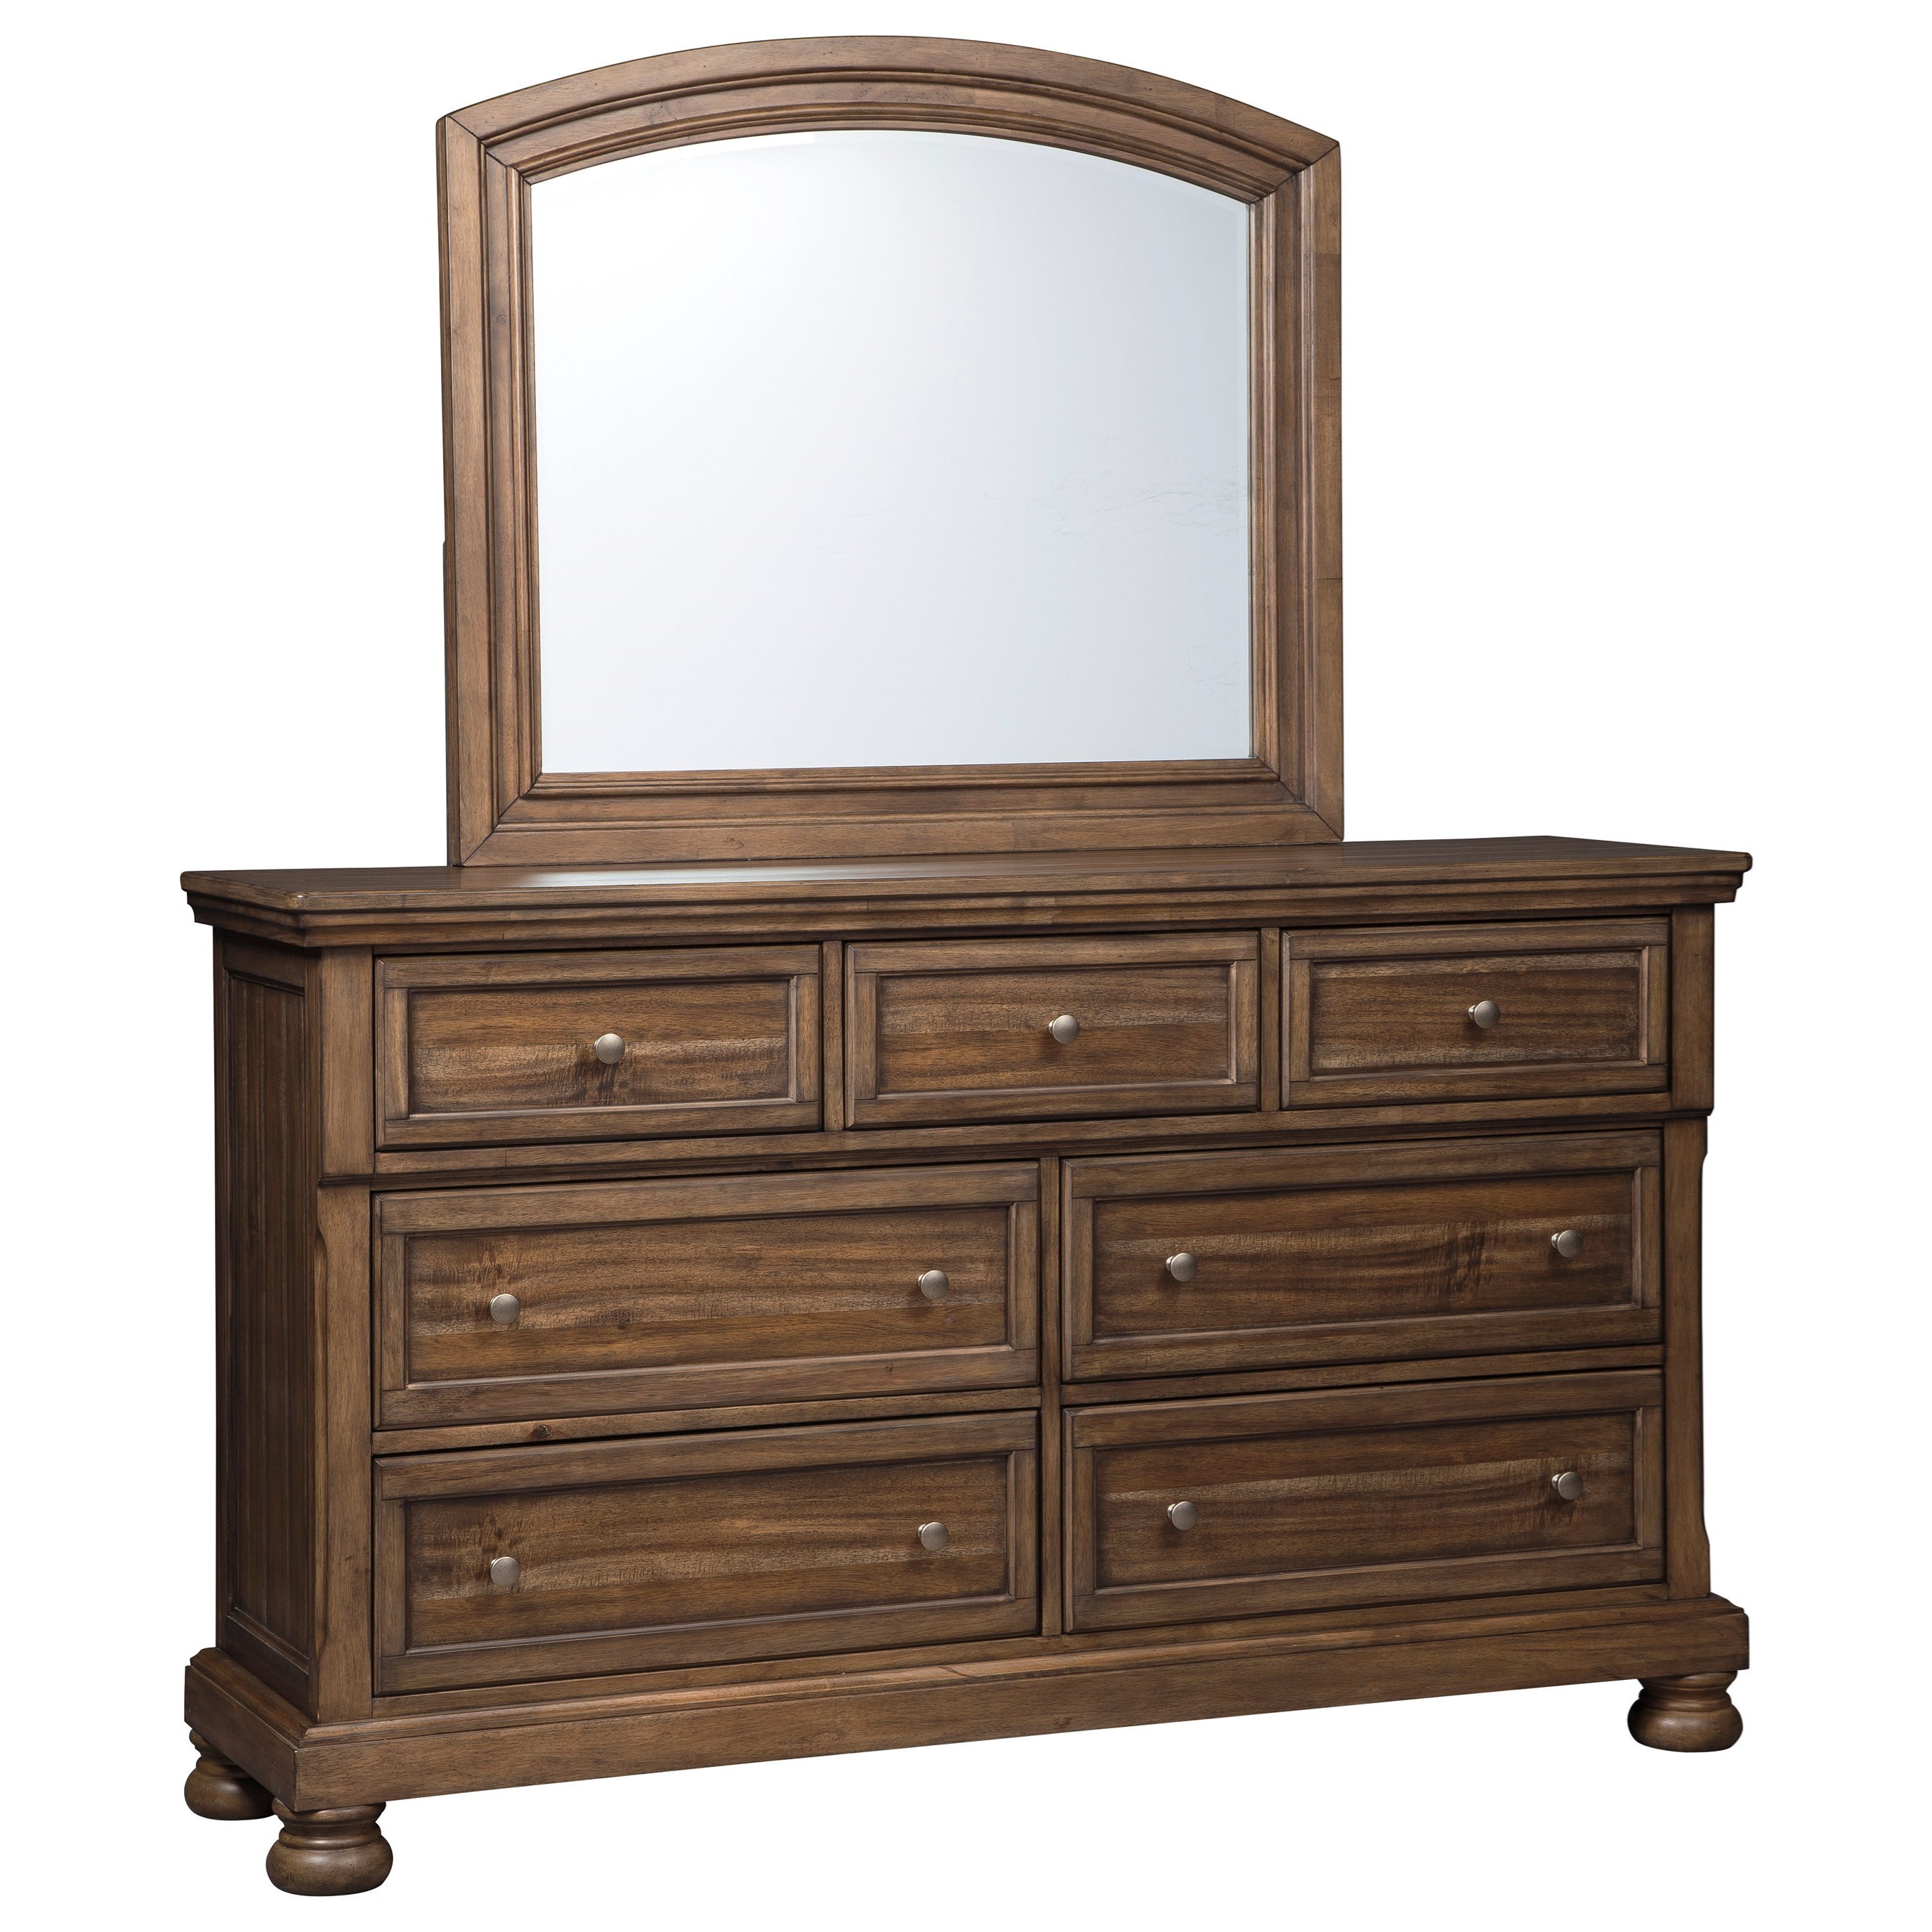 Flynnter Dresser & Bedroom Mirror by Signature Design by Ashley at Lindy's Furniture Company